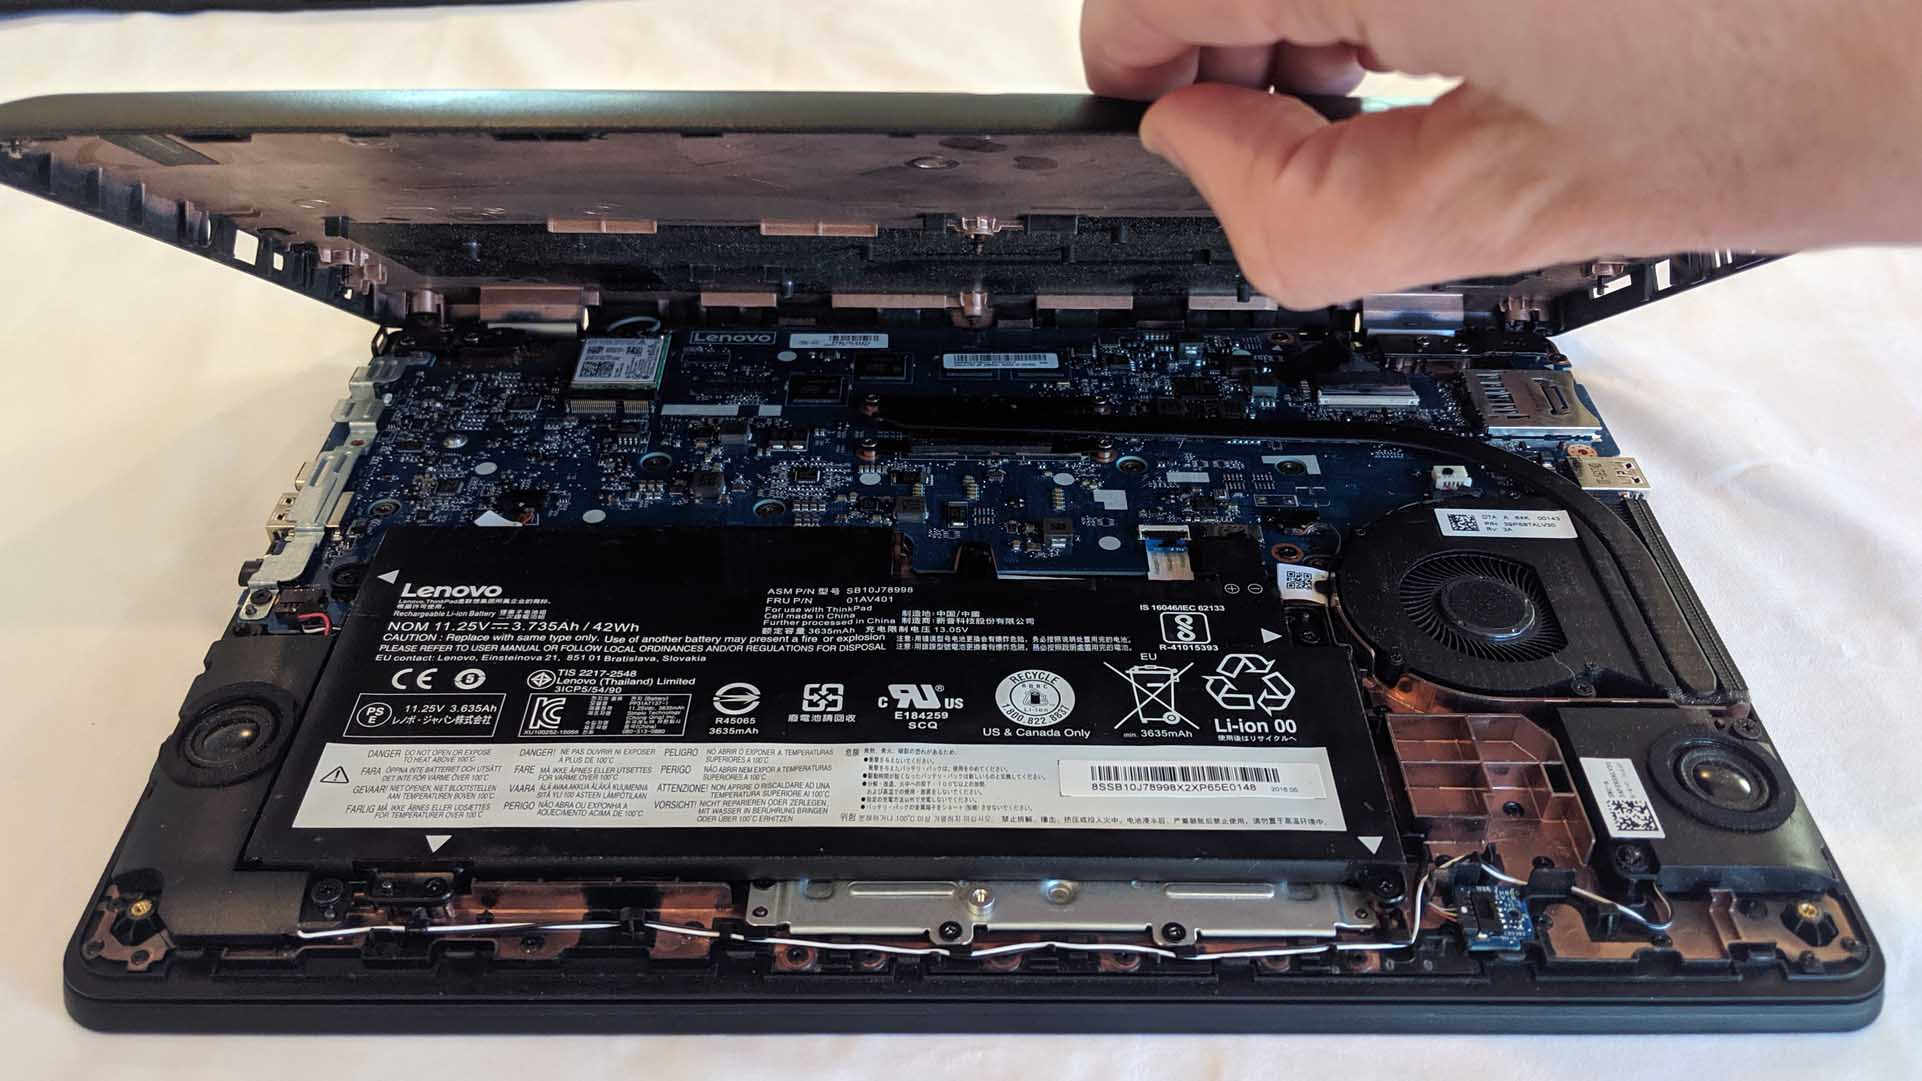 The bottom case of a laptop being removed.